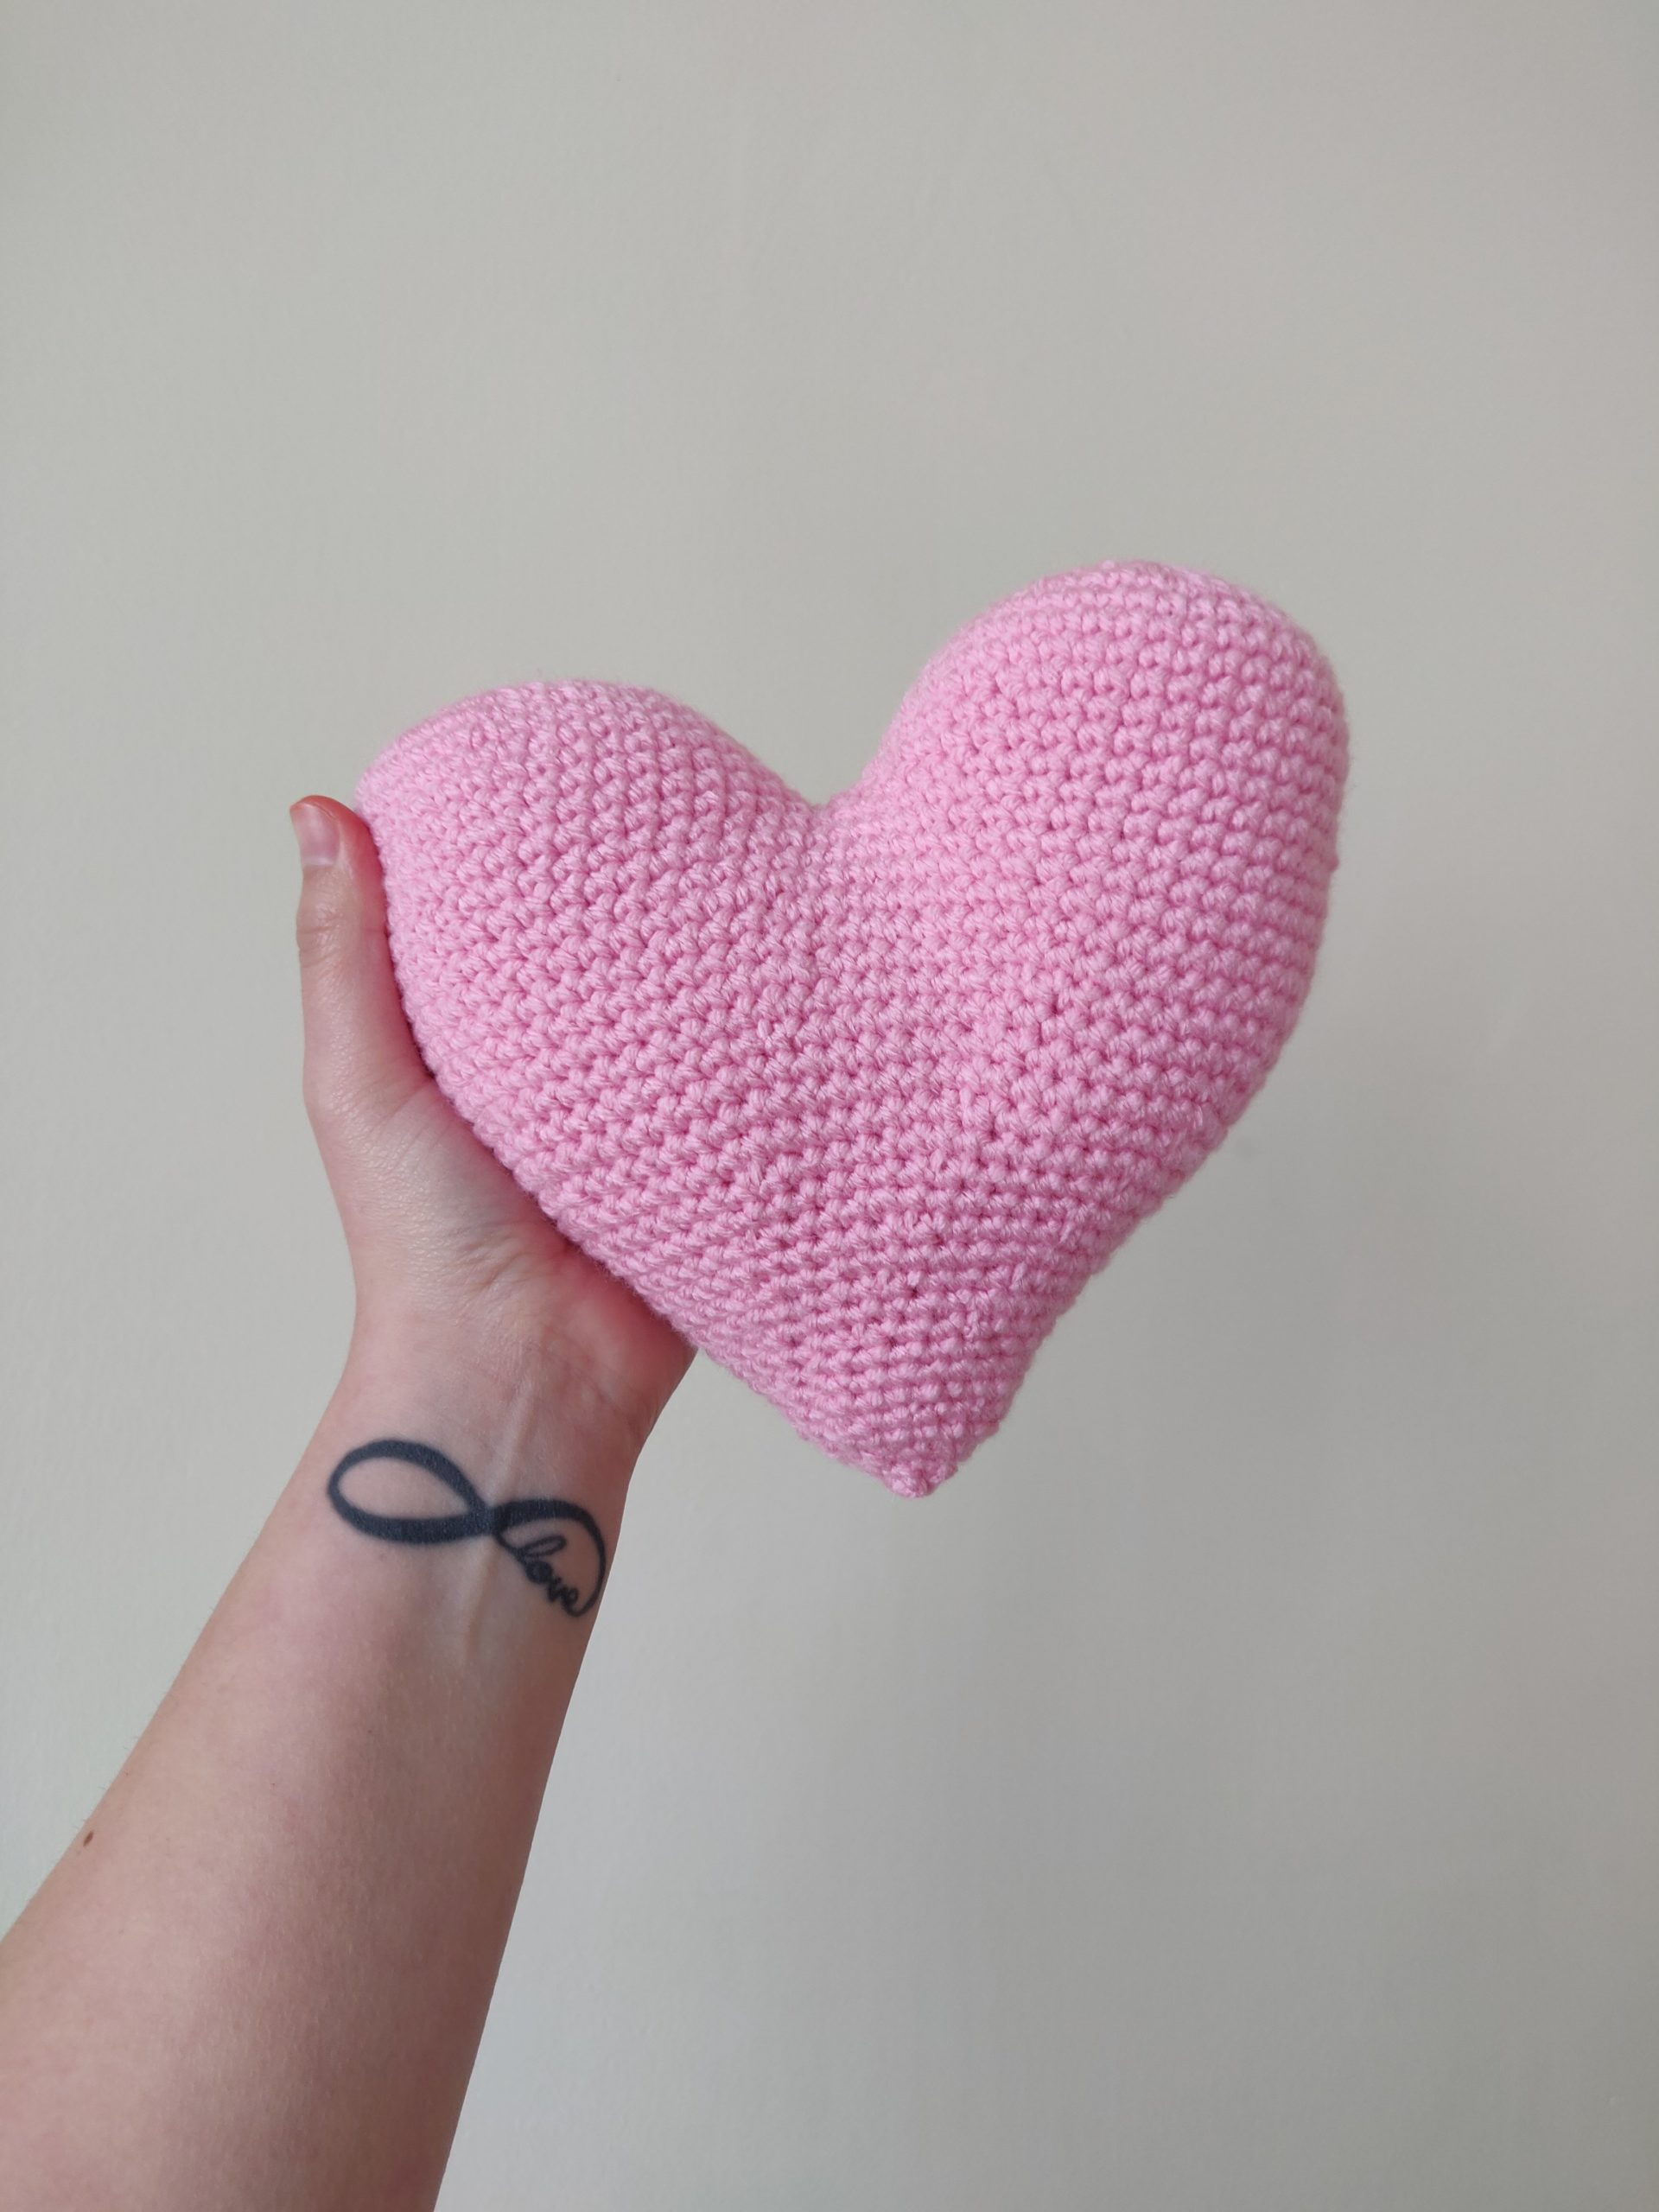 Finished pink crochet heart